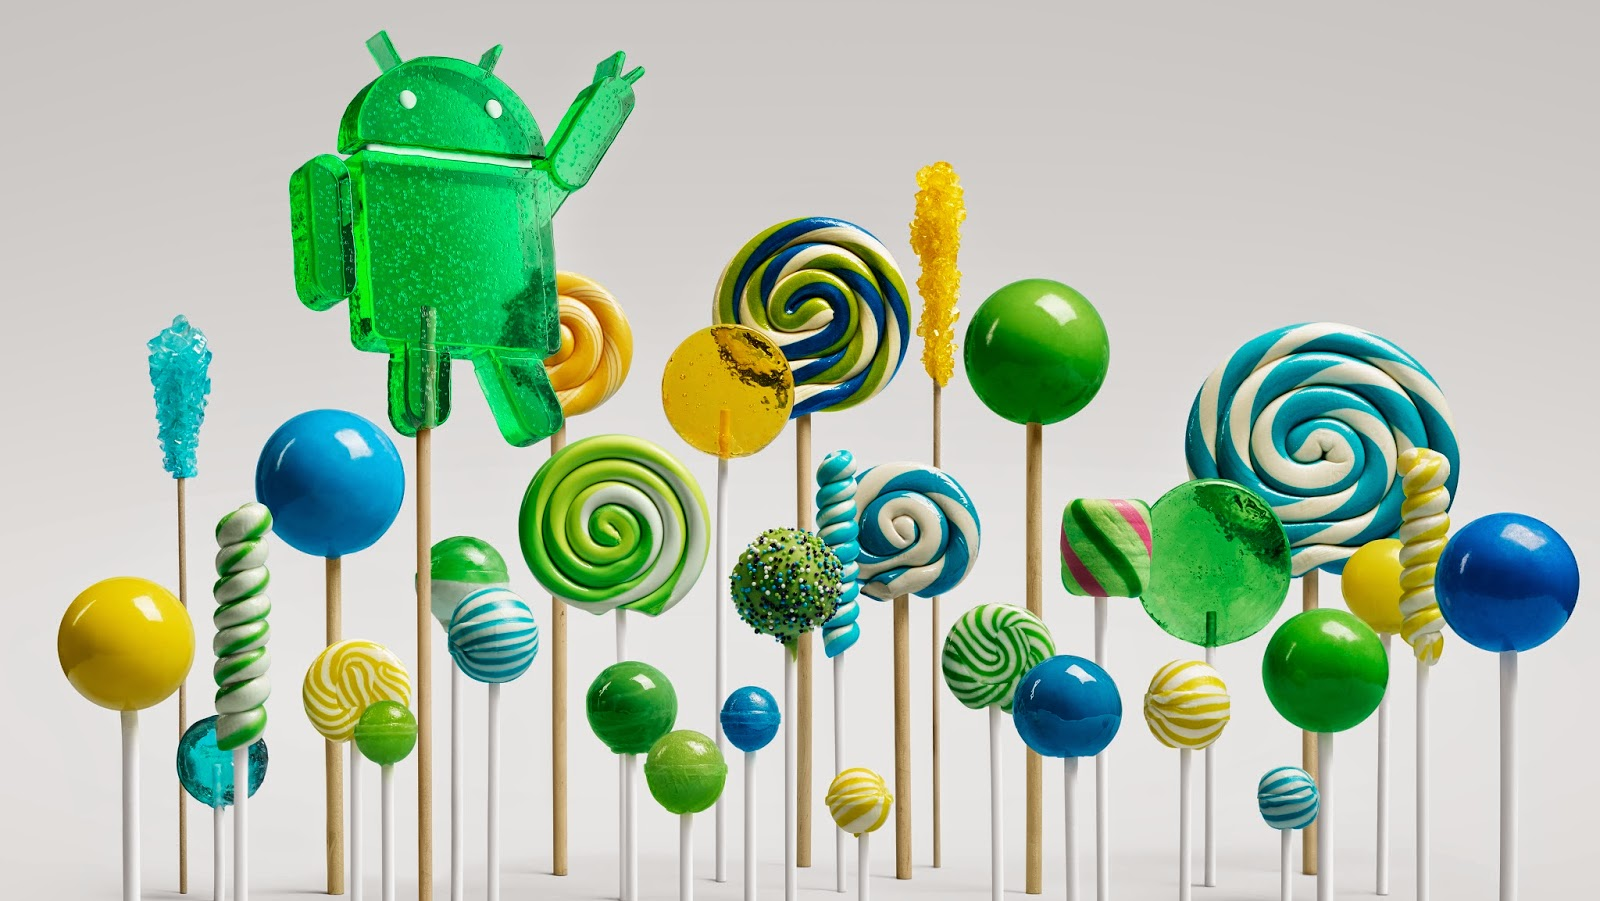 Android Lollipop - Google's Sweetest Release to Date